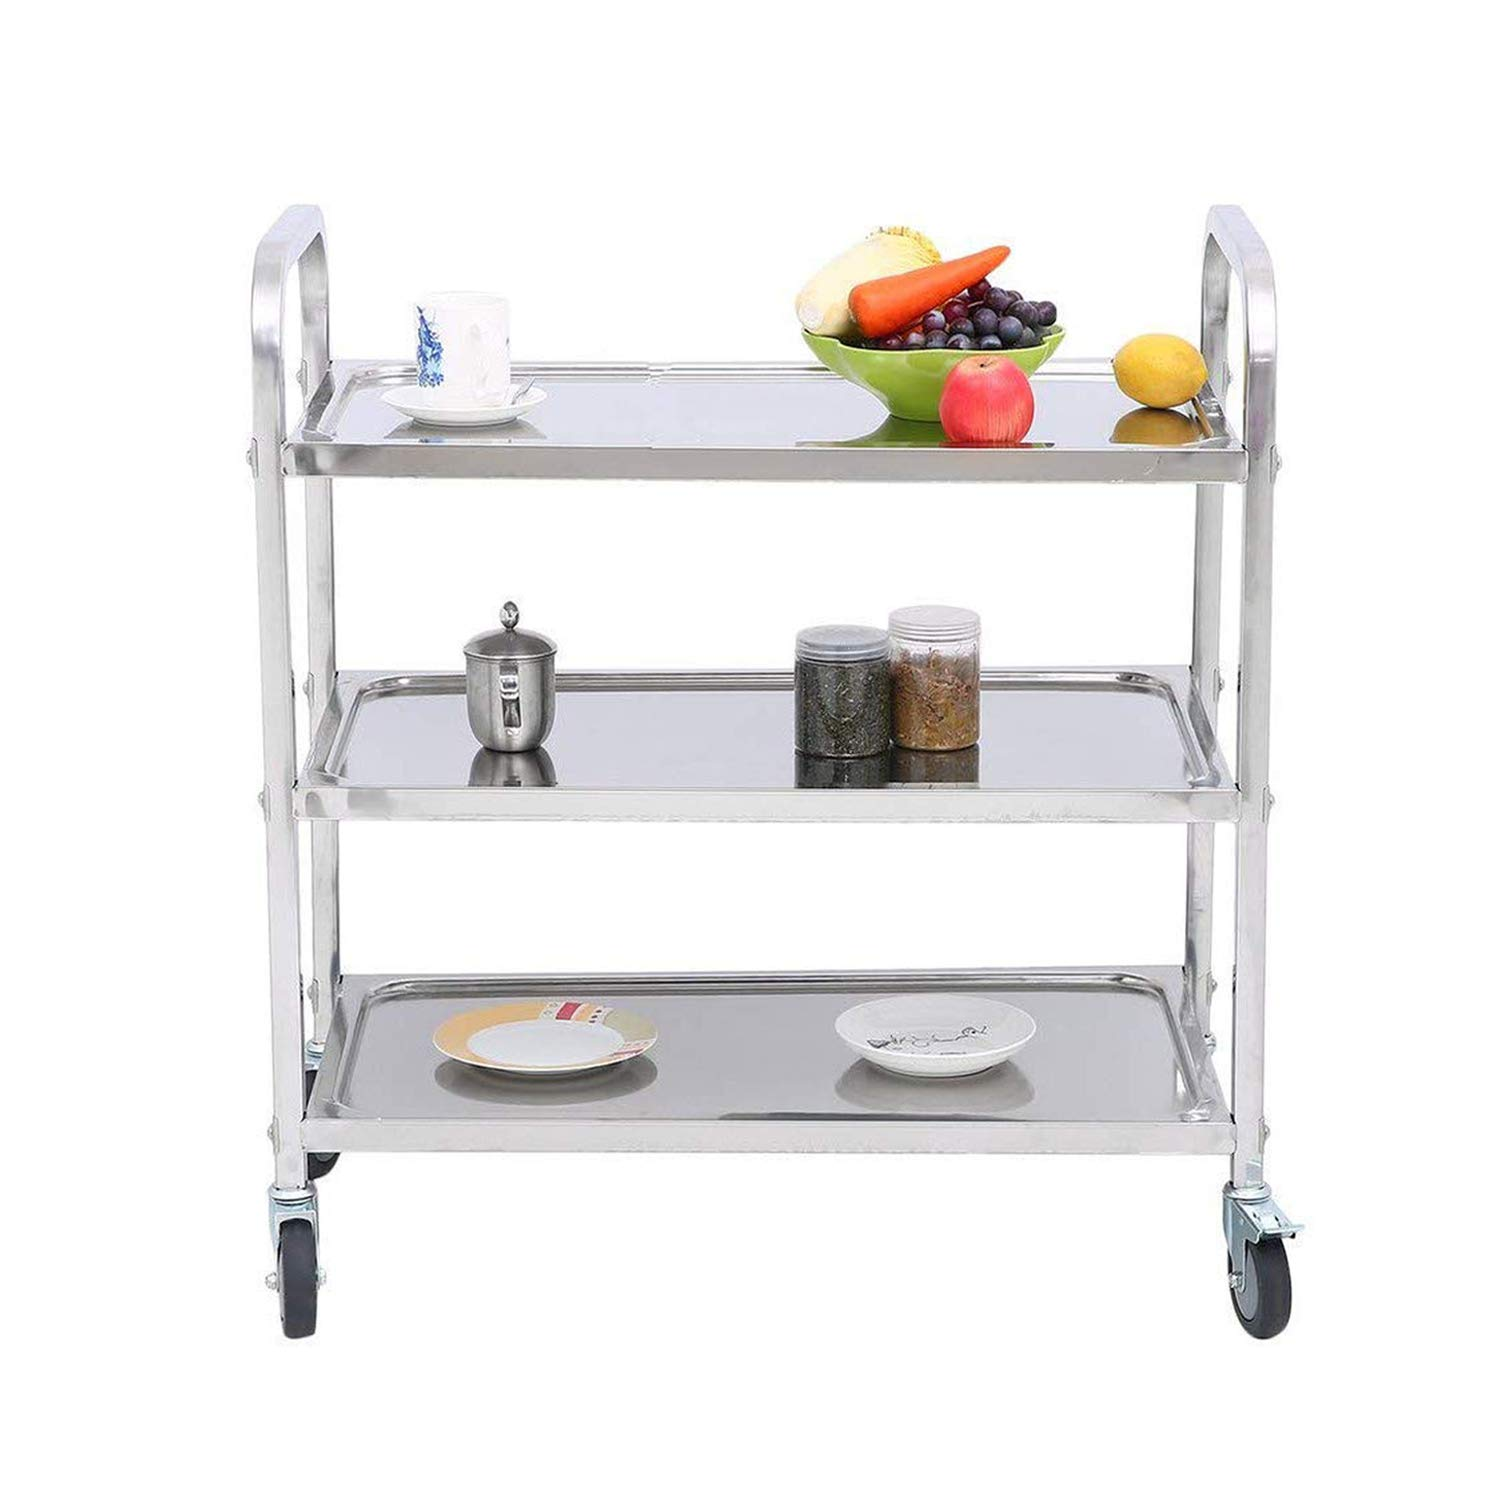 3-Shelf Stainless Steel Cart with Wheels for Restaurant Catering Kitchen Storage Serving Trolley Utility Cart 2 with Brake Lock,2 Without Brake Lock – 29.5×15.7×32.9 inch